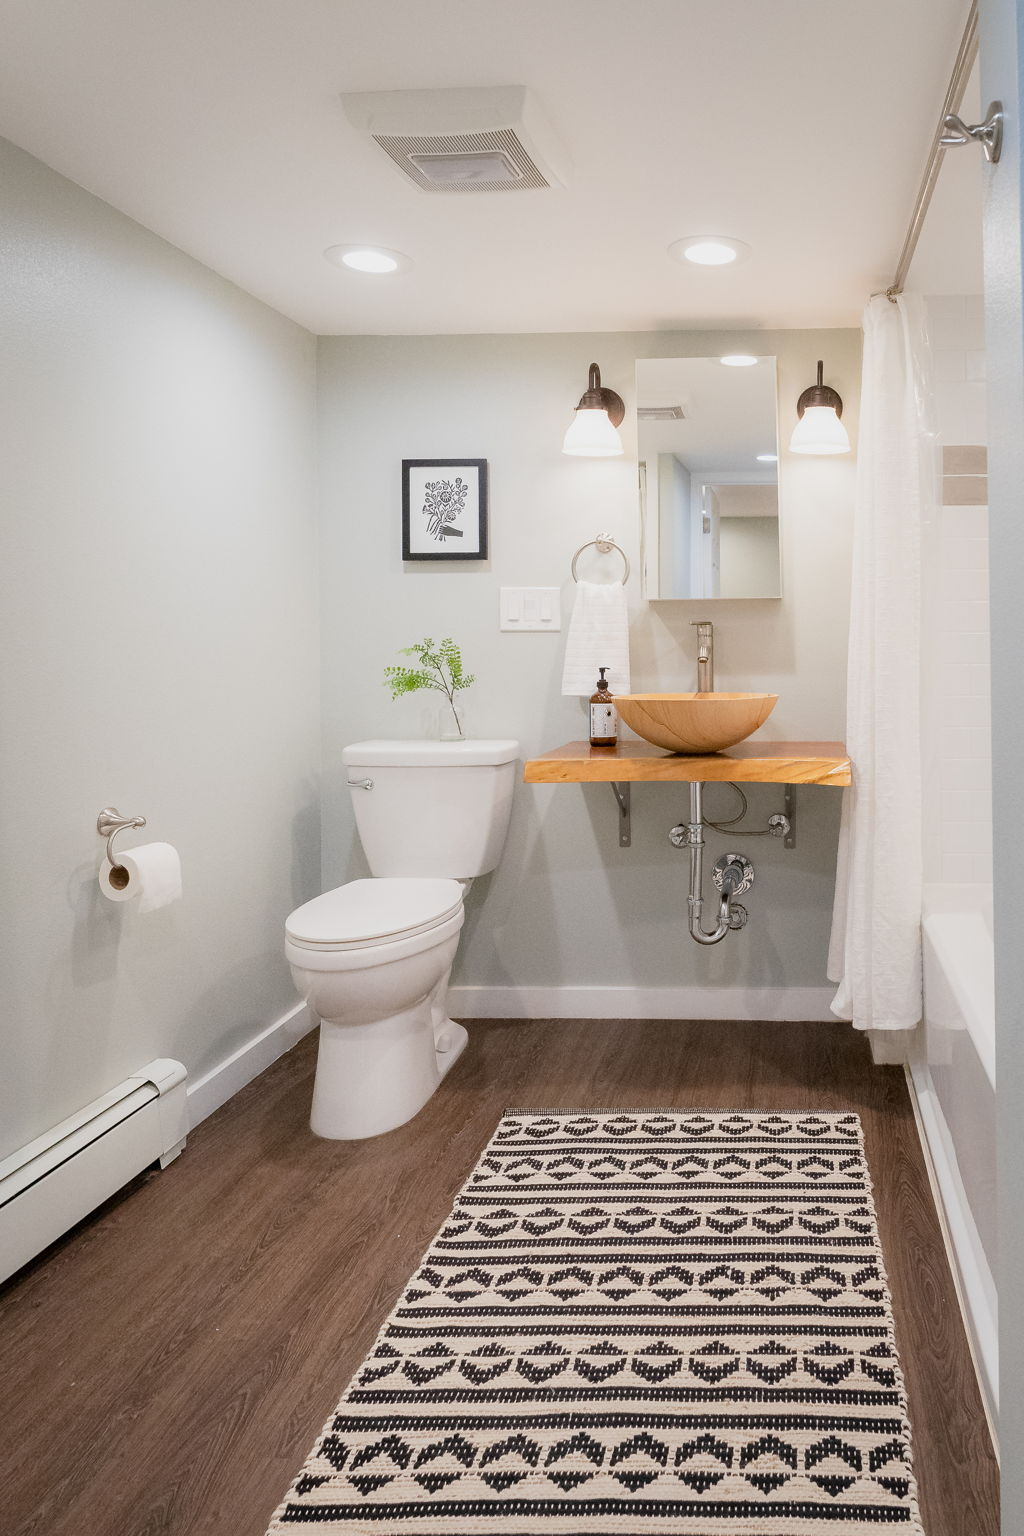 Ensuite access to Full remodeled bathroom on 1st Floor